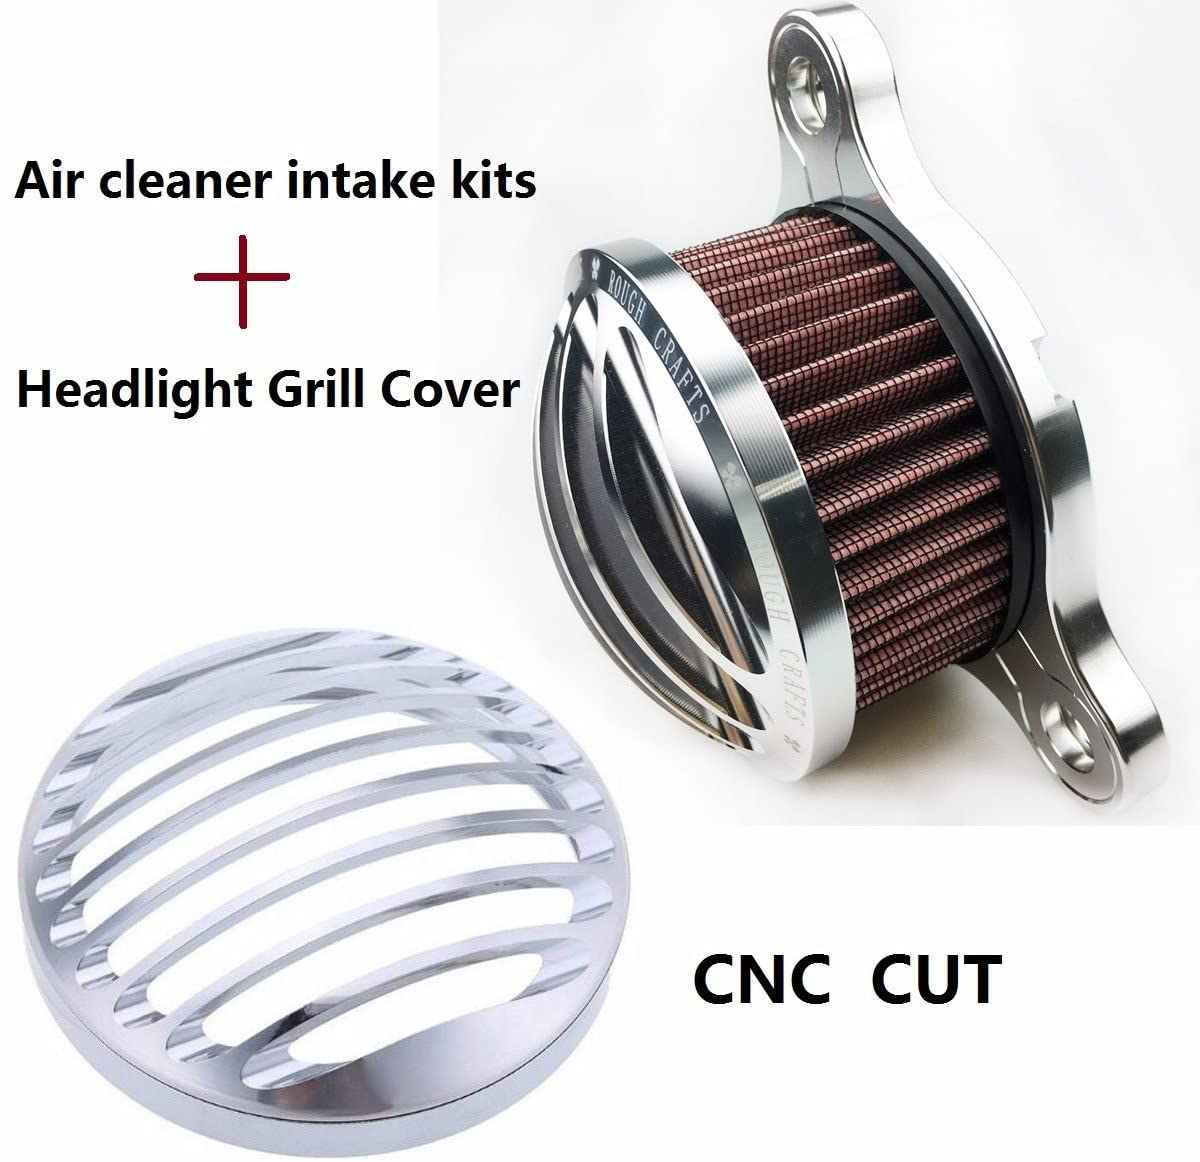 CHROME Headlight Cover + harley Air Cleaner air filter Sportster 883 xl1200 harley davidson sportster 883 04-14